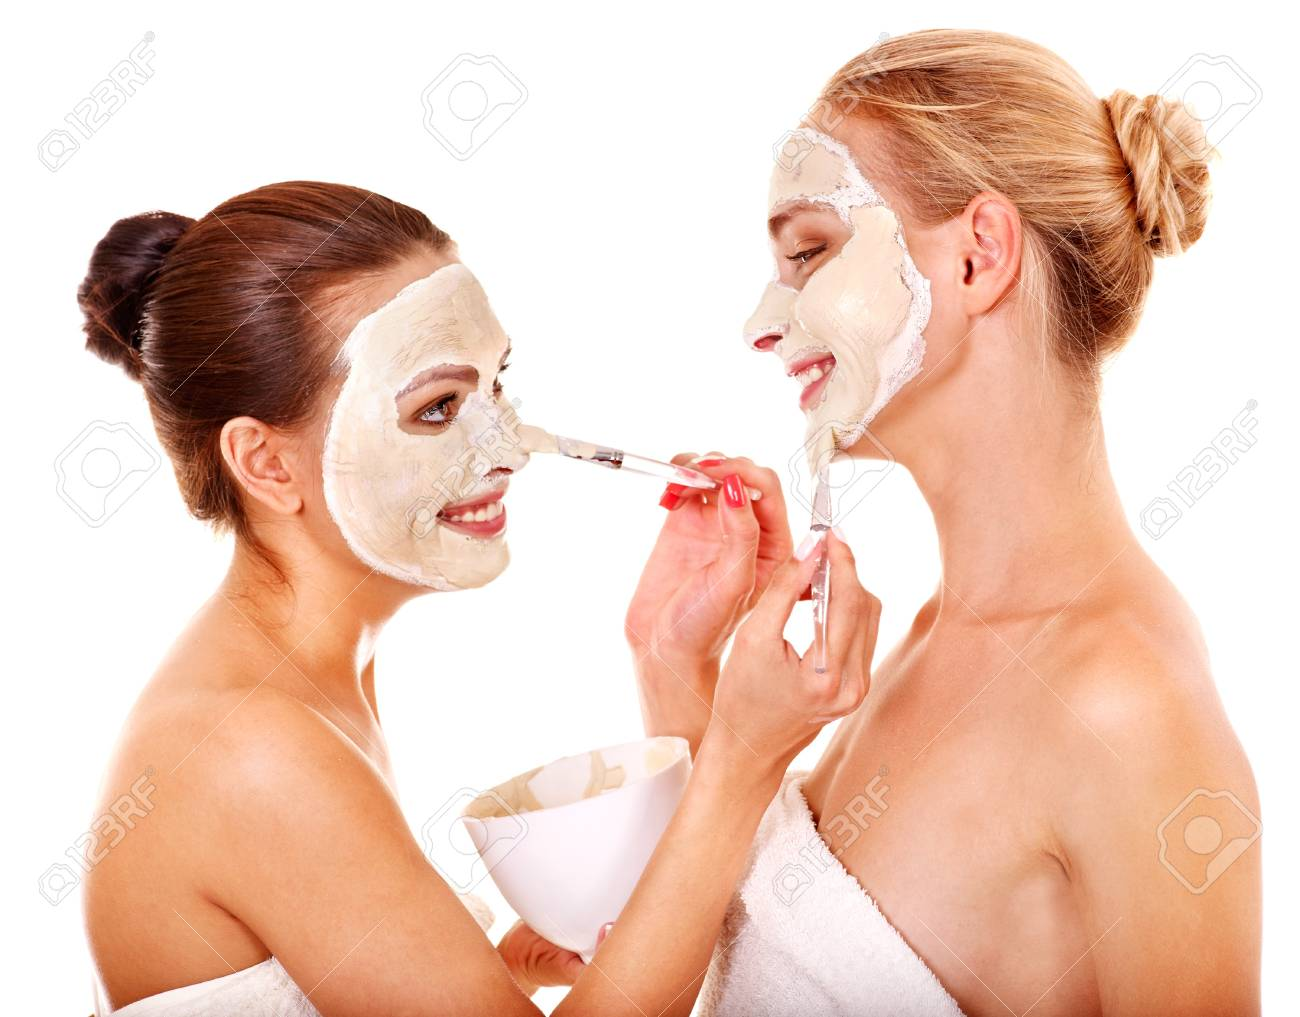 Young woman getting facial mask and gossip . Isolated. Stock Photo - 16609837